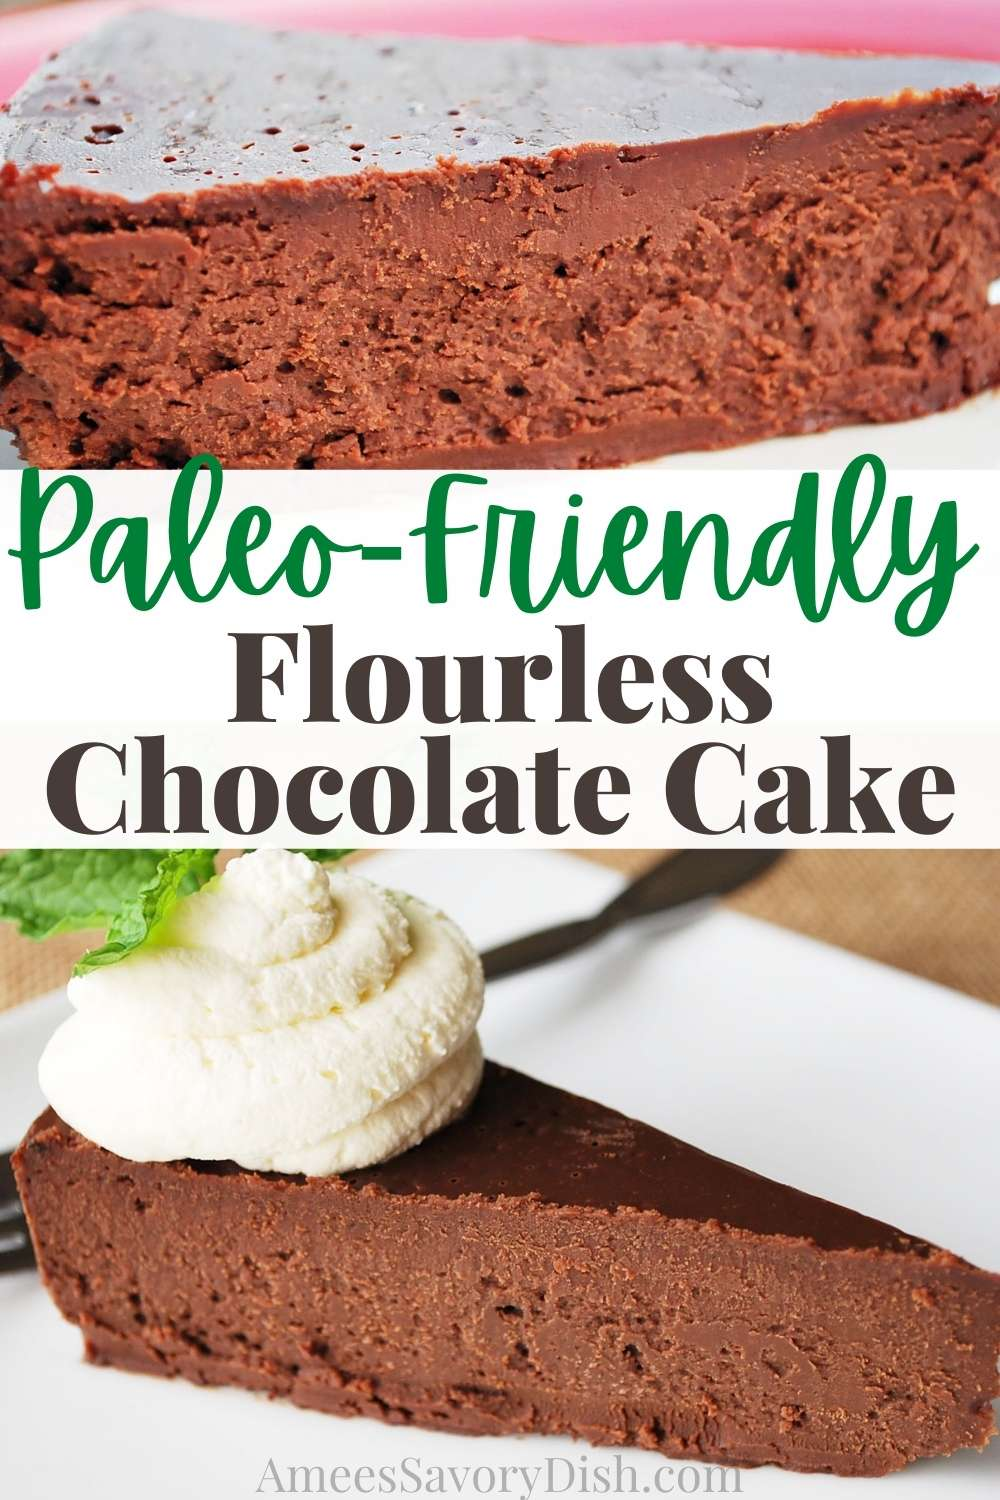 This Paleo Flourless Chocolate Cake recipe makes a rich and fudgy chocolate cake with healthy gluten-free and dairy-free ingredients. This cake is the perfect decadent dessert to satisfy your sweet tooth! via @Ameessavorydish